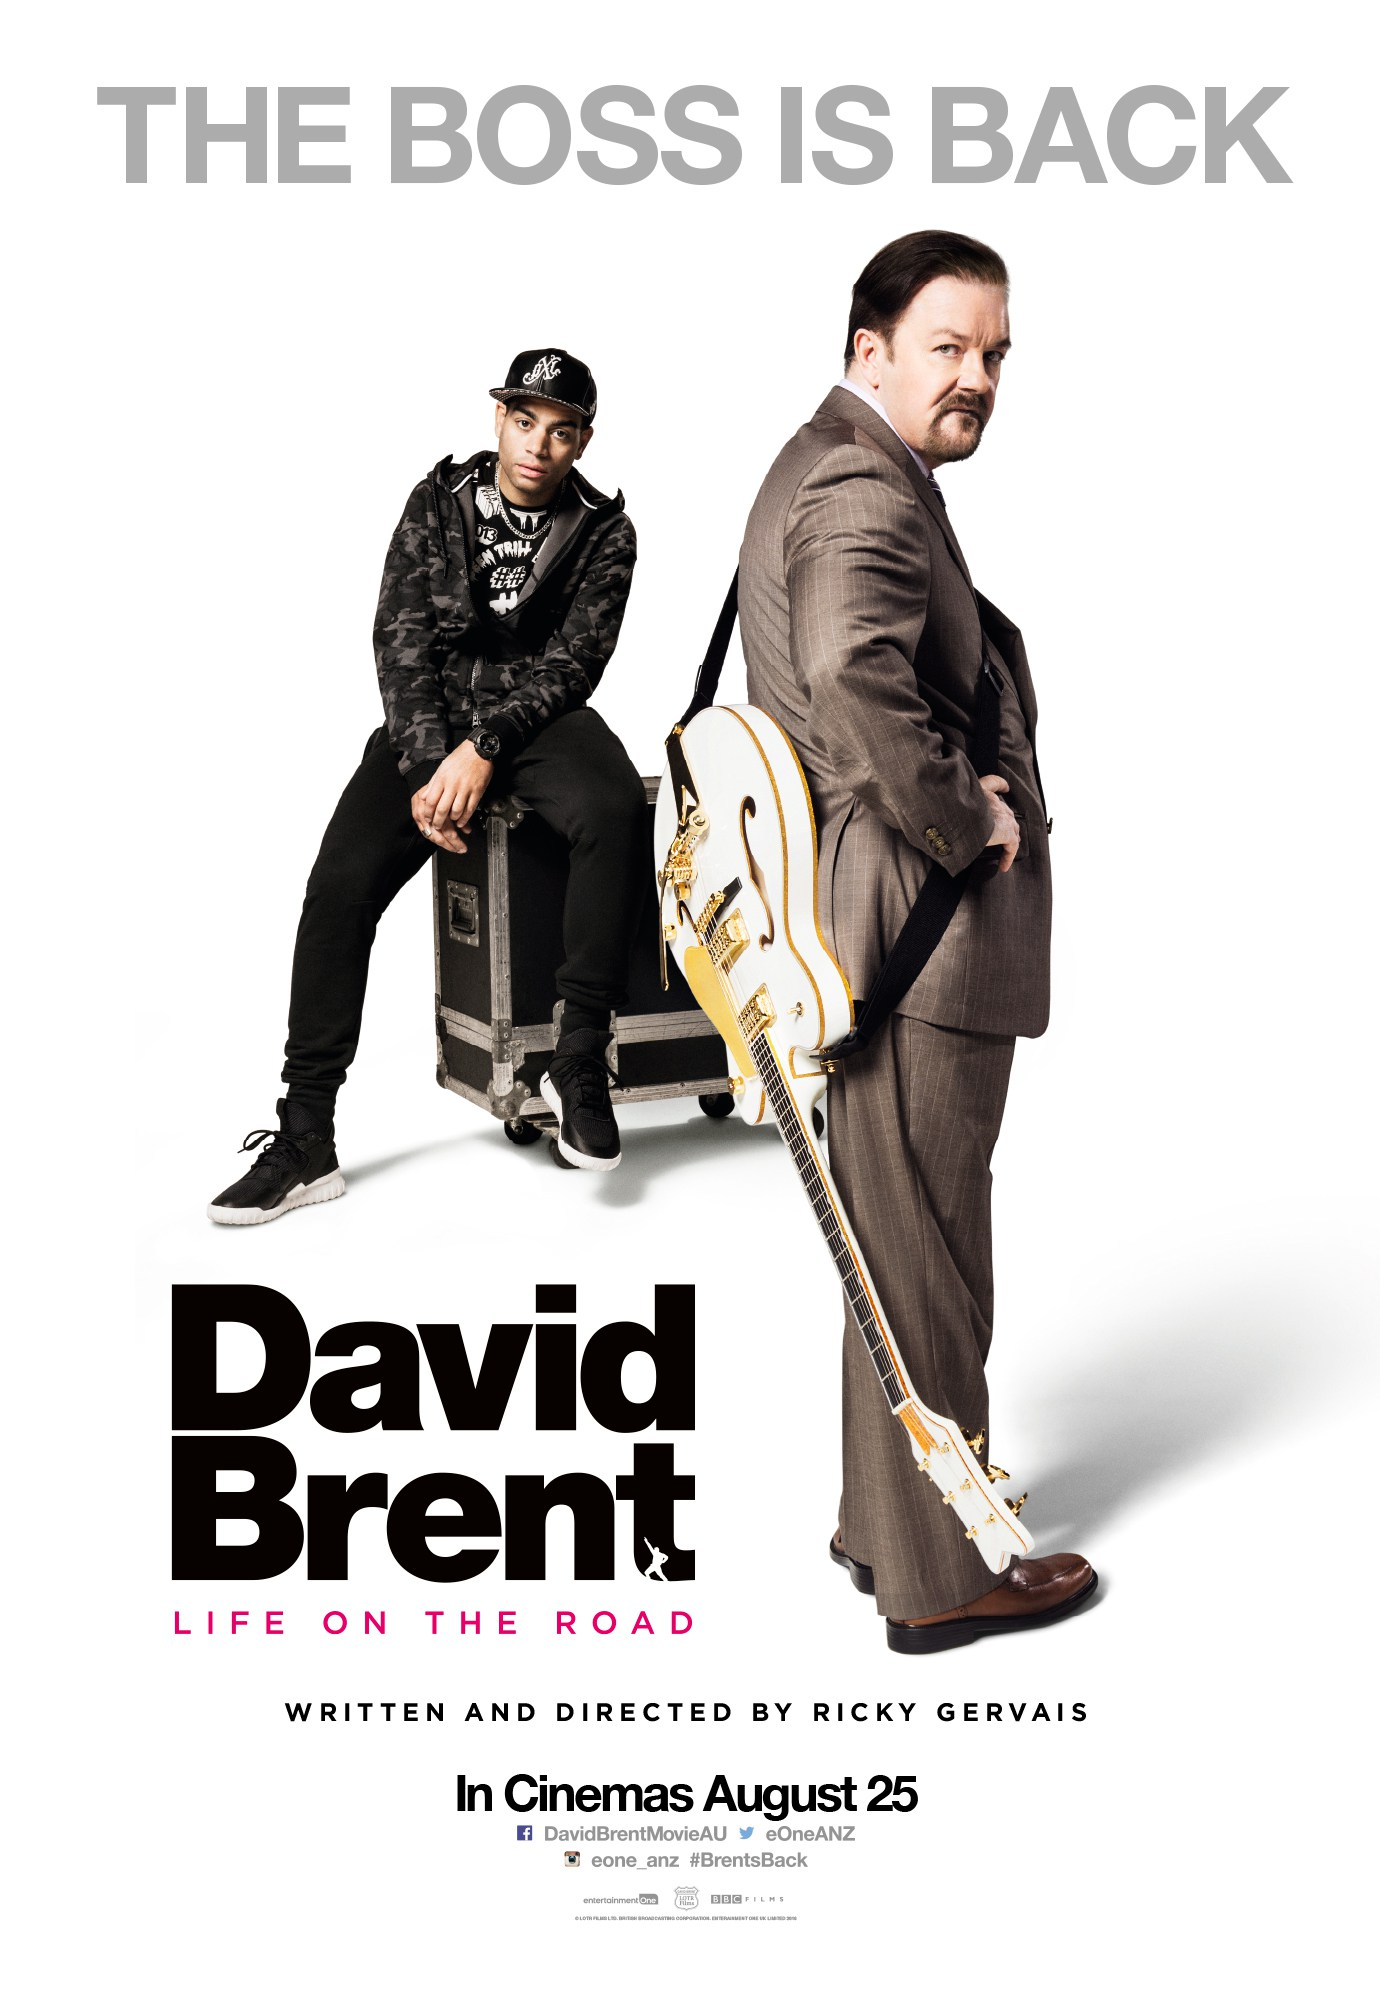 David Brent: Life on the Road. - Director: Ricky GervaisFeaturing music by artists from SixtyFour Music / Hummingbird Music.Synopsis: The film catches up with Brent 12 years after the airing of the BBC mockumentary